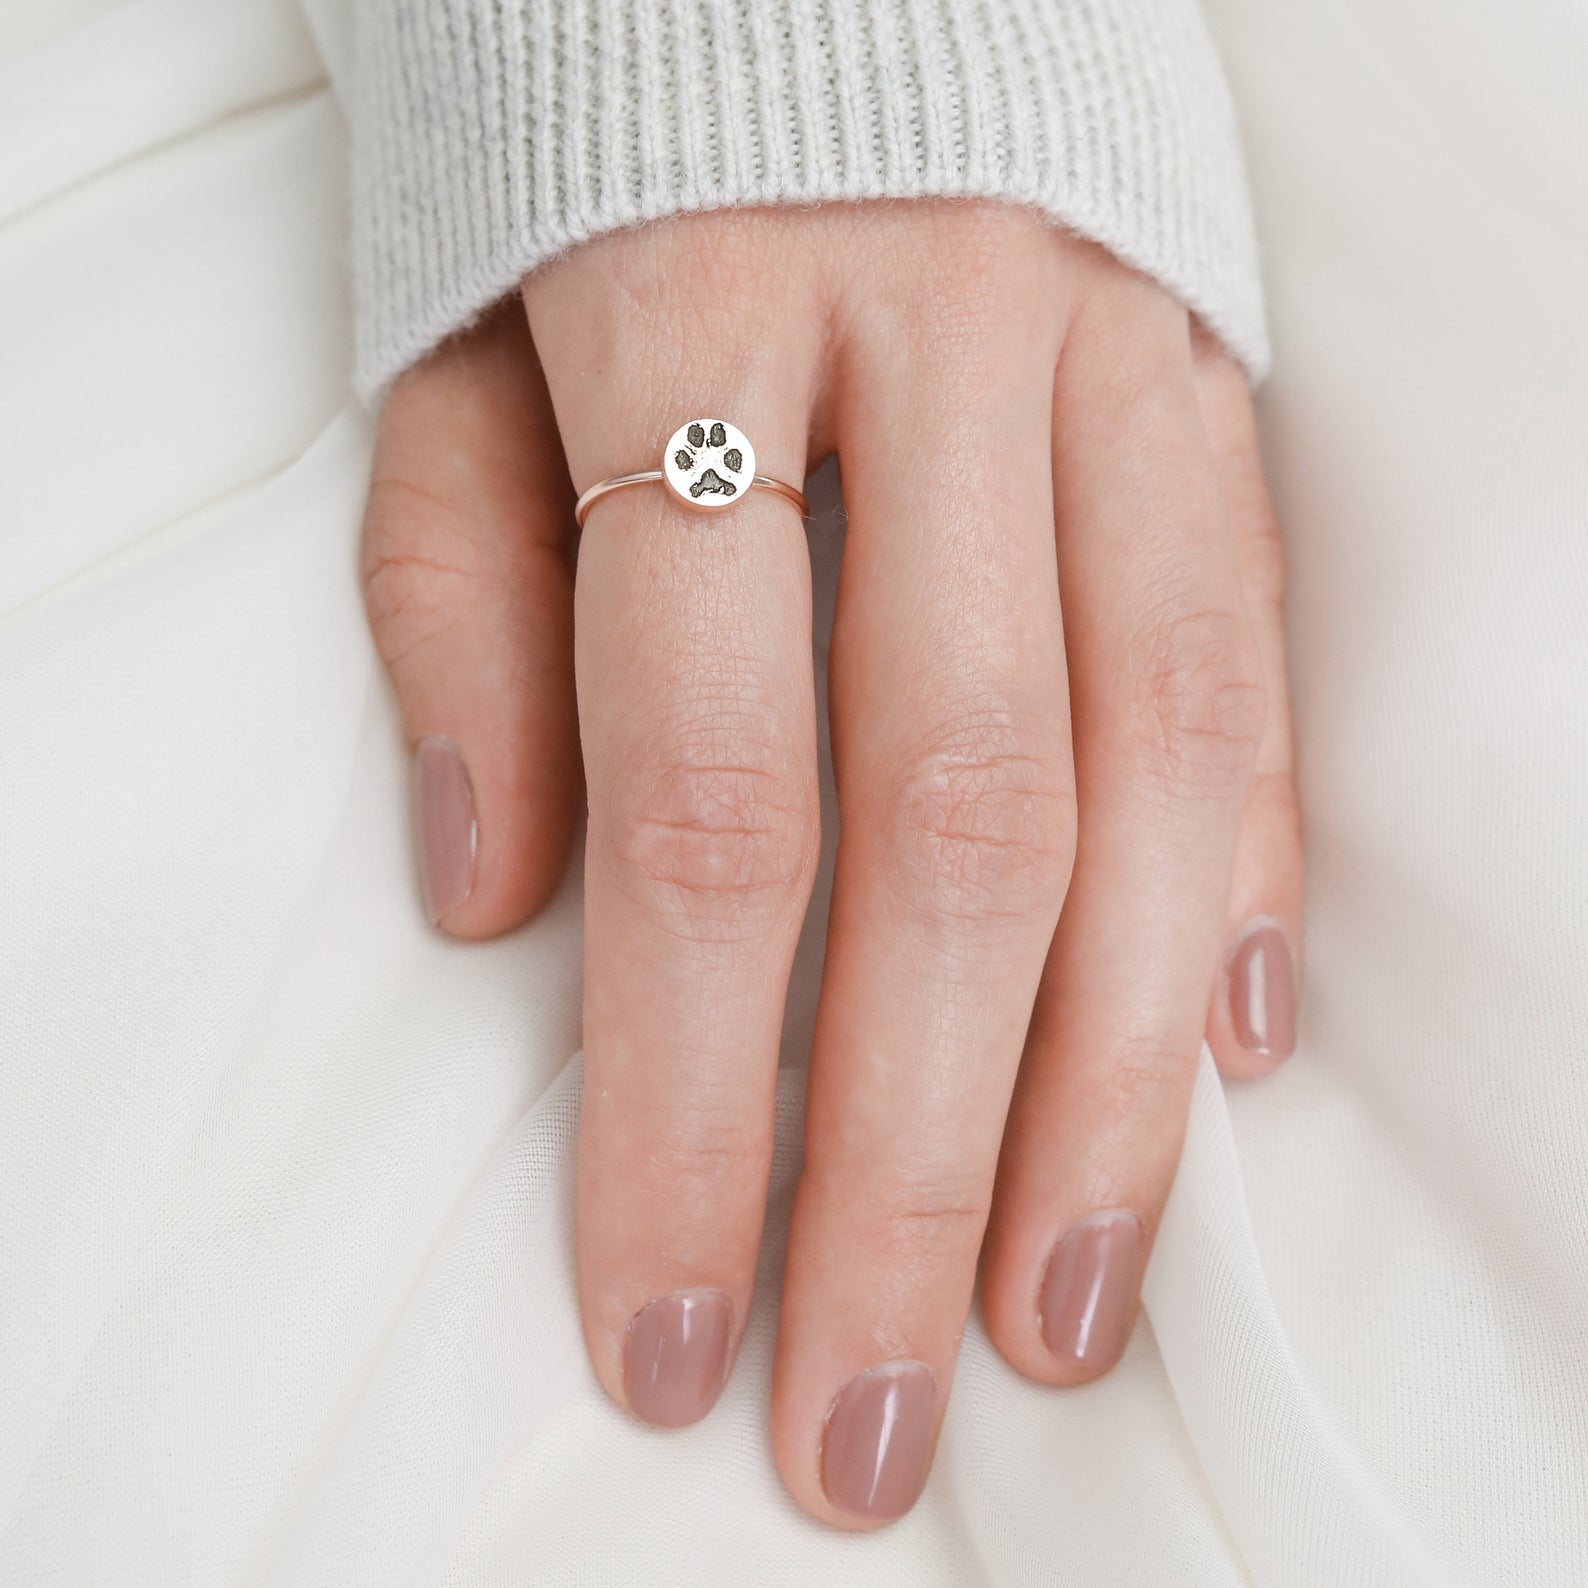 Hand with small ring with paw print stamped on it